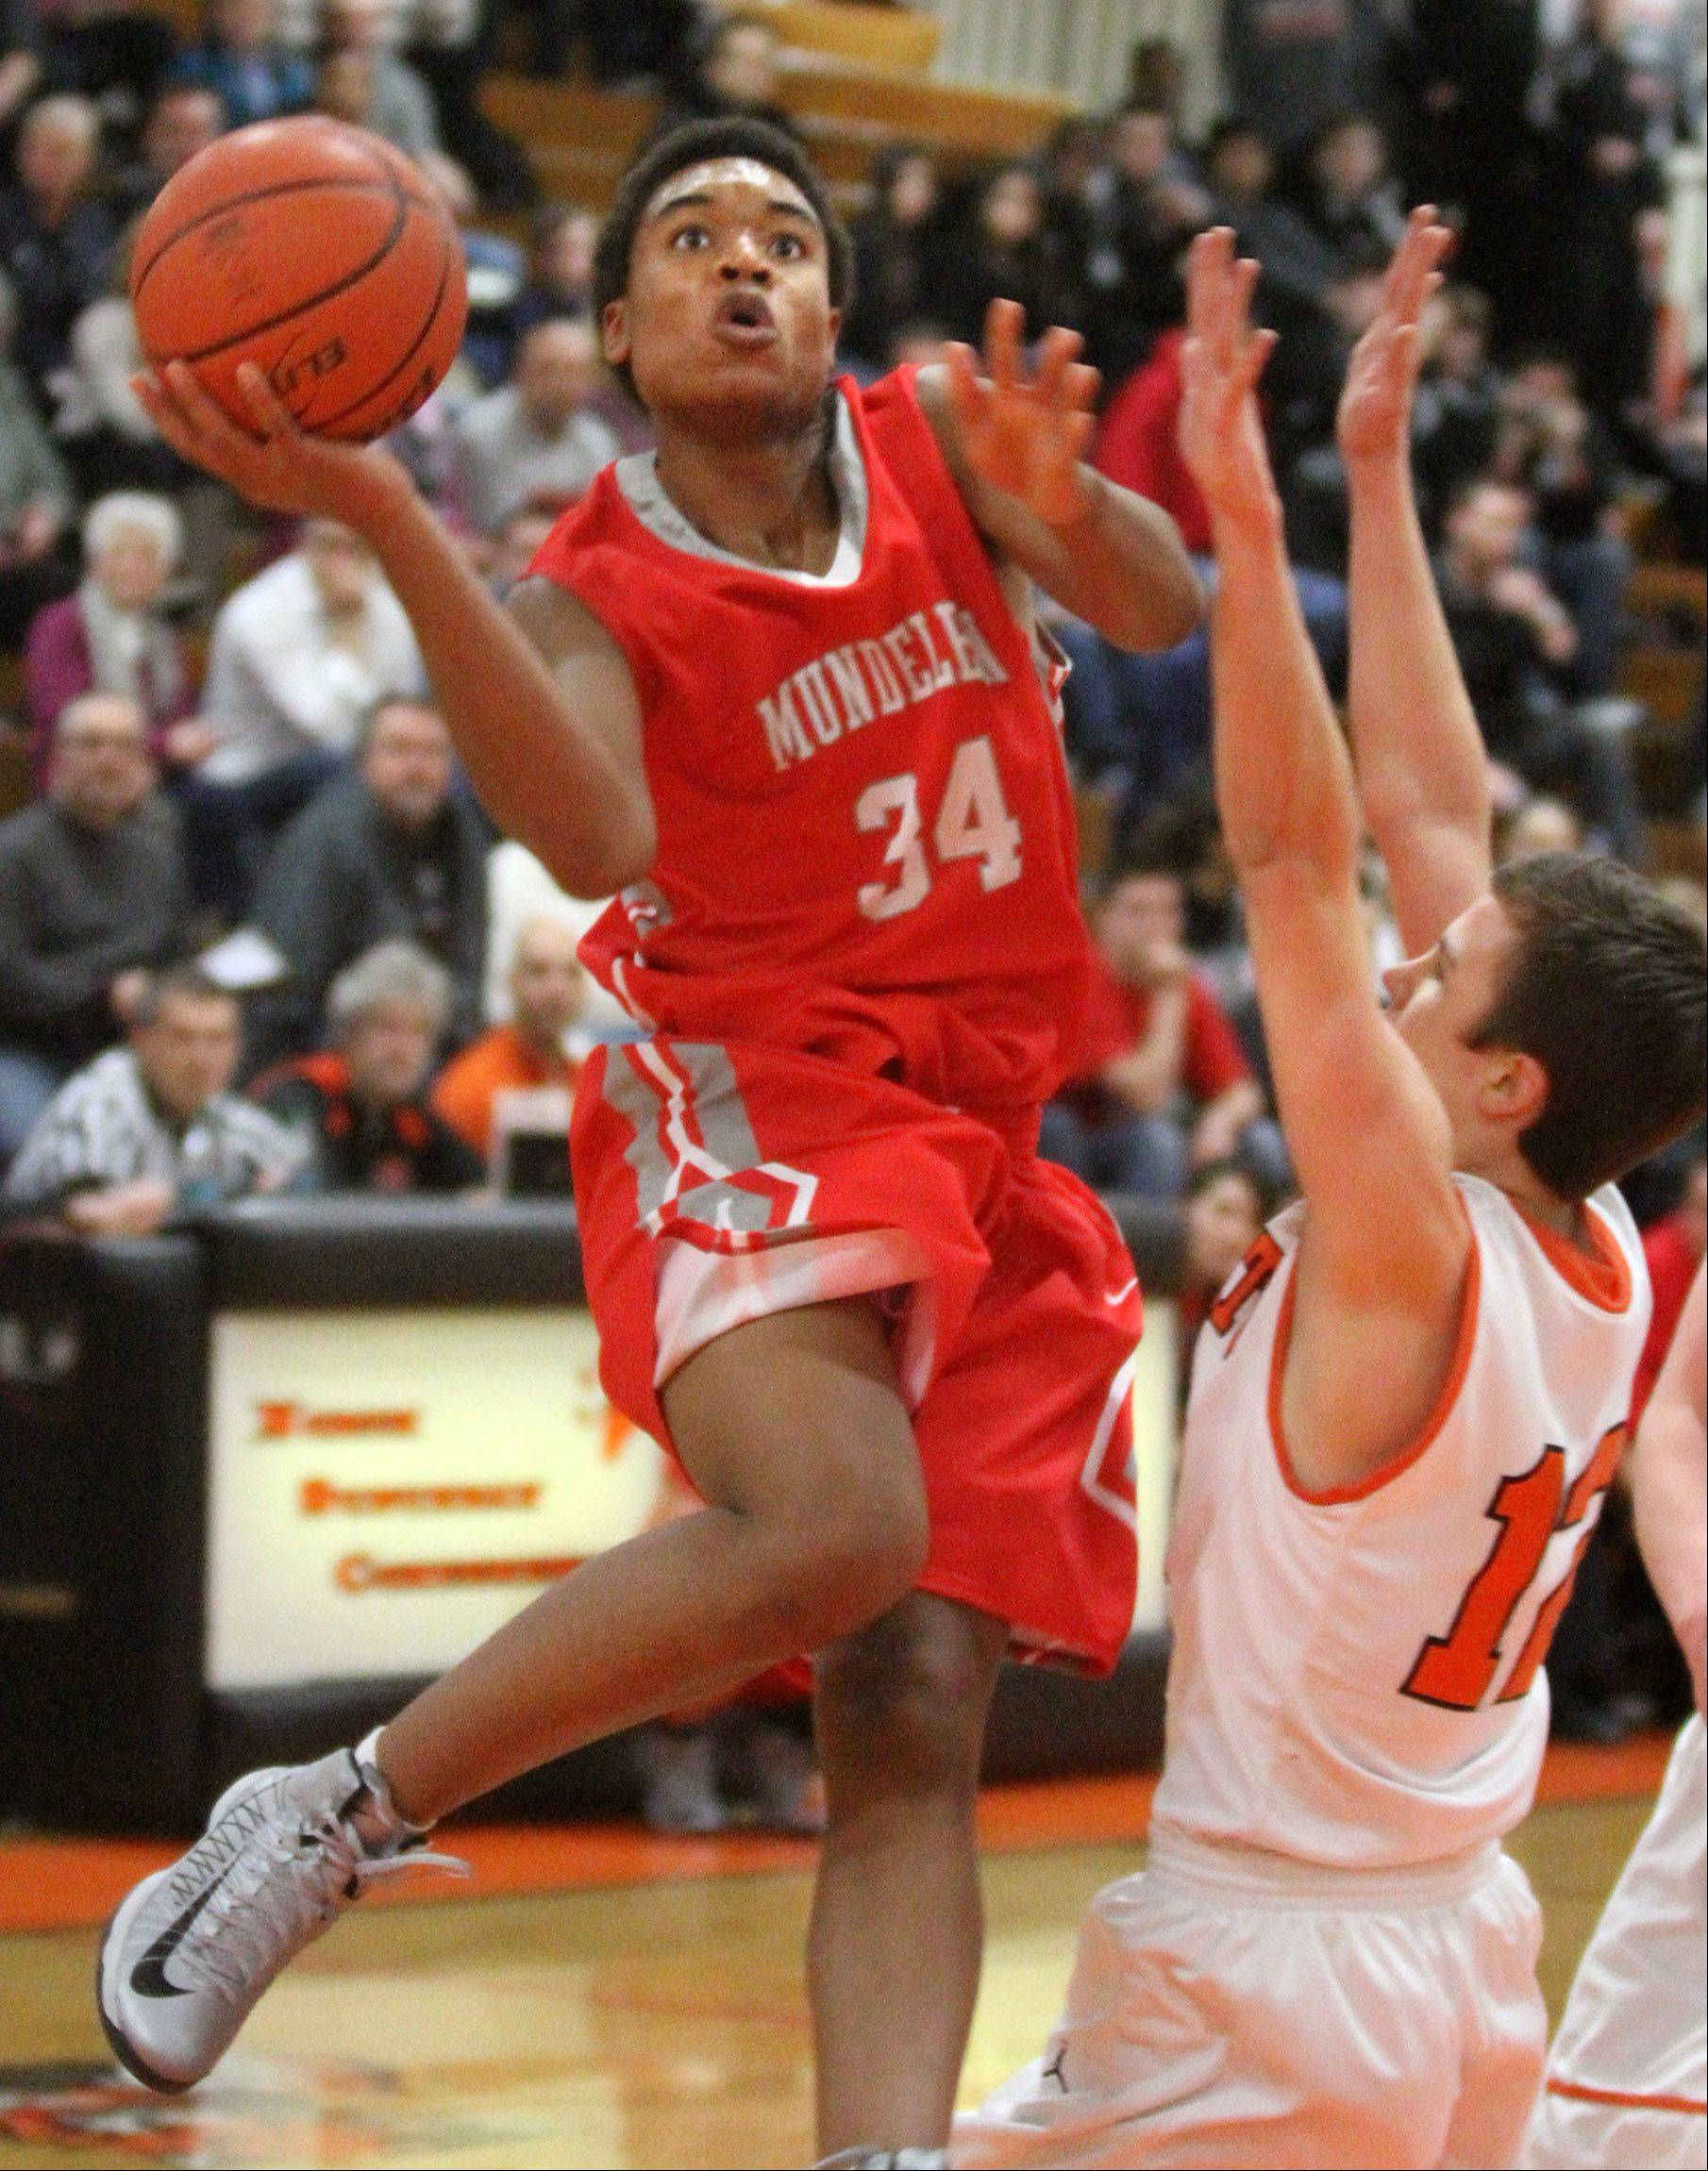 Mundelein's Cliff Dunigan shoots around Libertyville defender Nick Carlucci.